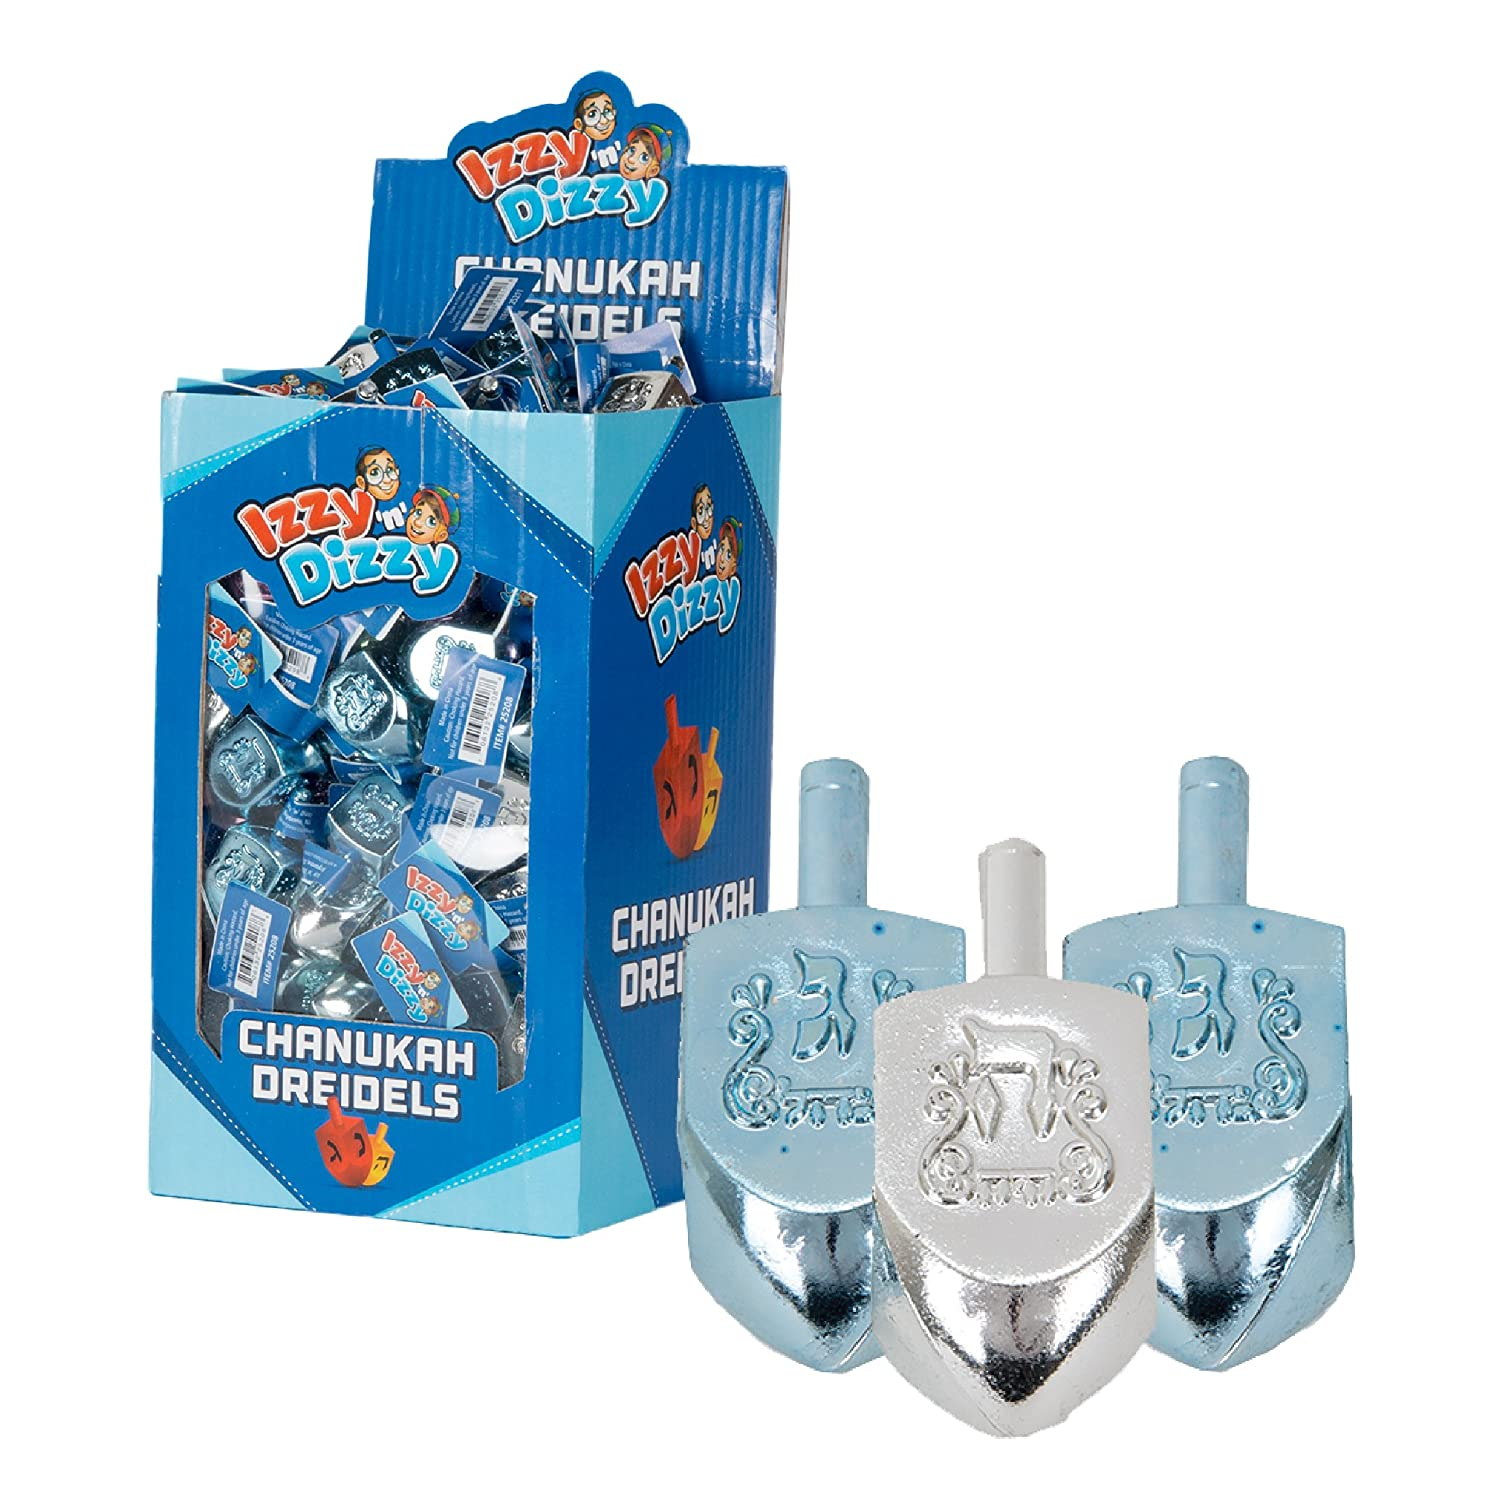 Ner Mitzvah 100 Medium Dreidels Blue and Silver Metallic Classic Chanukah Spinning Draidel Game Gift and Prize Bulk Value Pack by Izzy n Dizzy